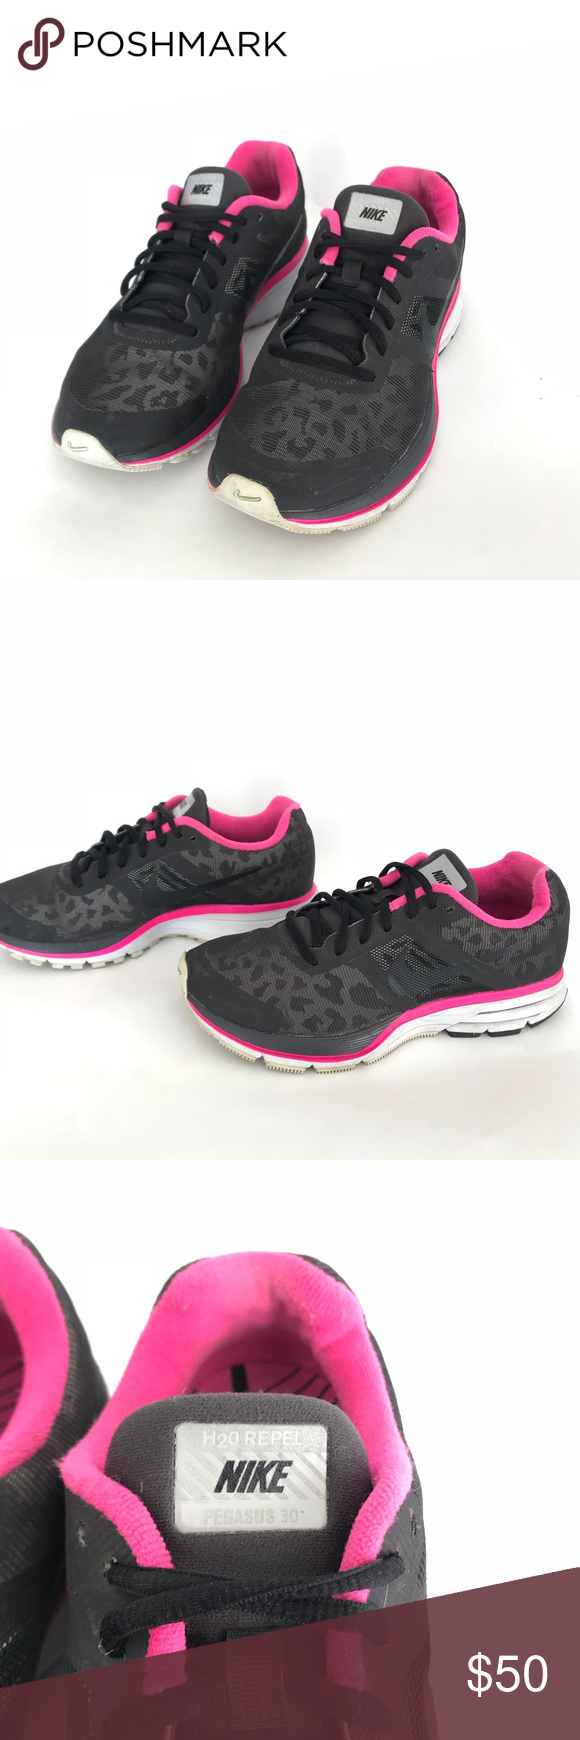 8c1557cd66d0 NIKE Pegasus 3.0 water repel leopard running shoes NIKE Pegasus 3.0 water -  H2O repel leopard running shoes Black and pink leopard print Kept in very  good ...